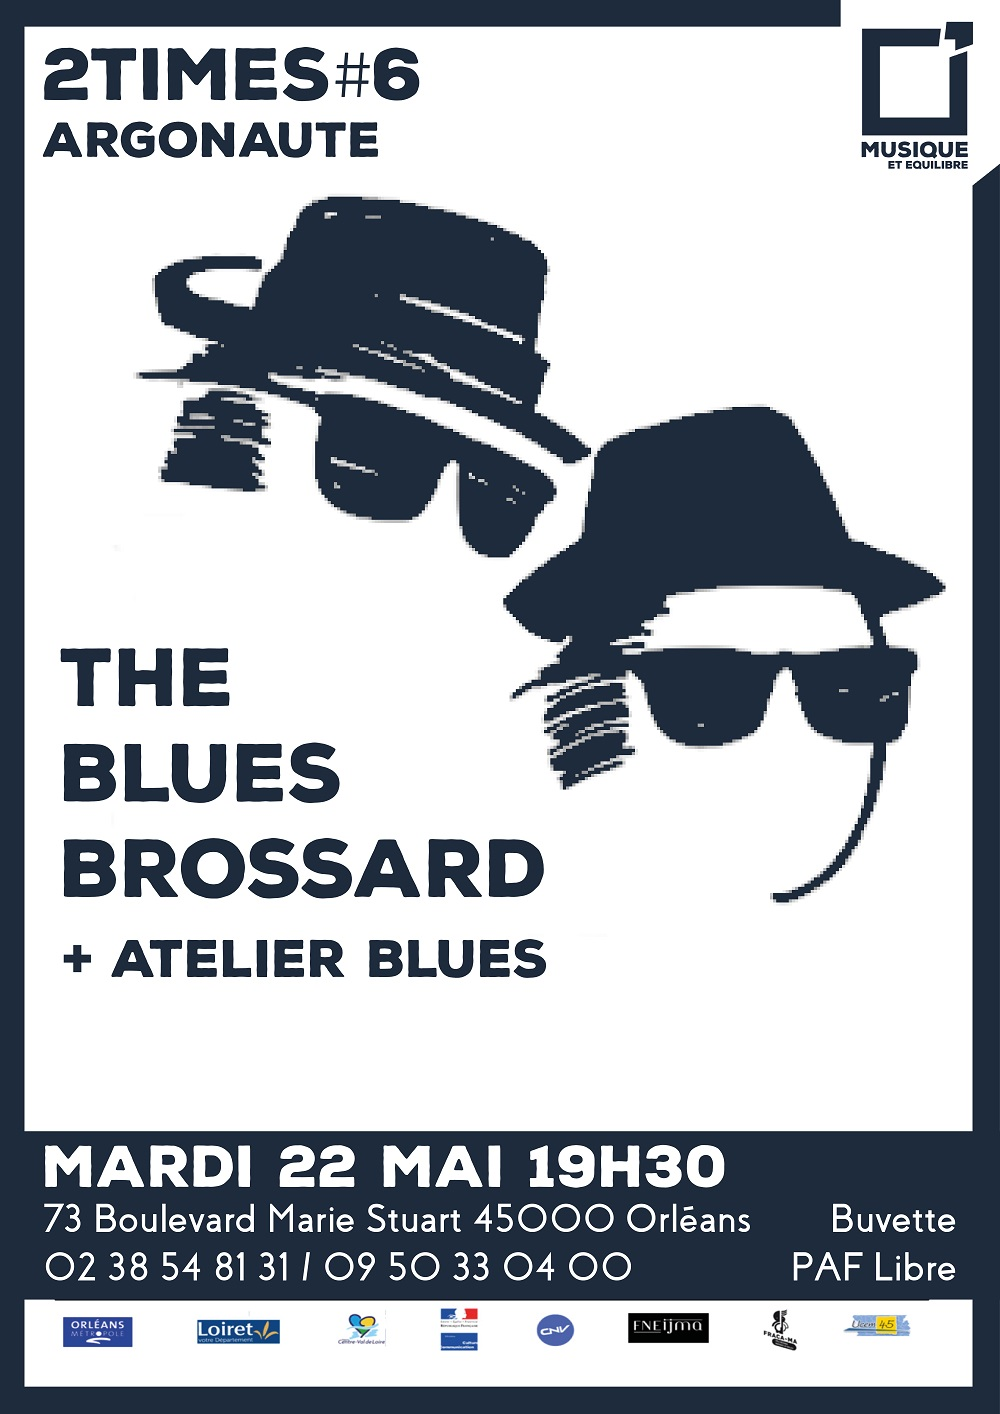 2times#6 The Blues Brossard / Atelier Blues